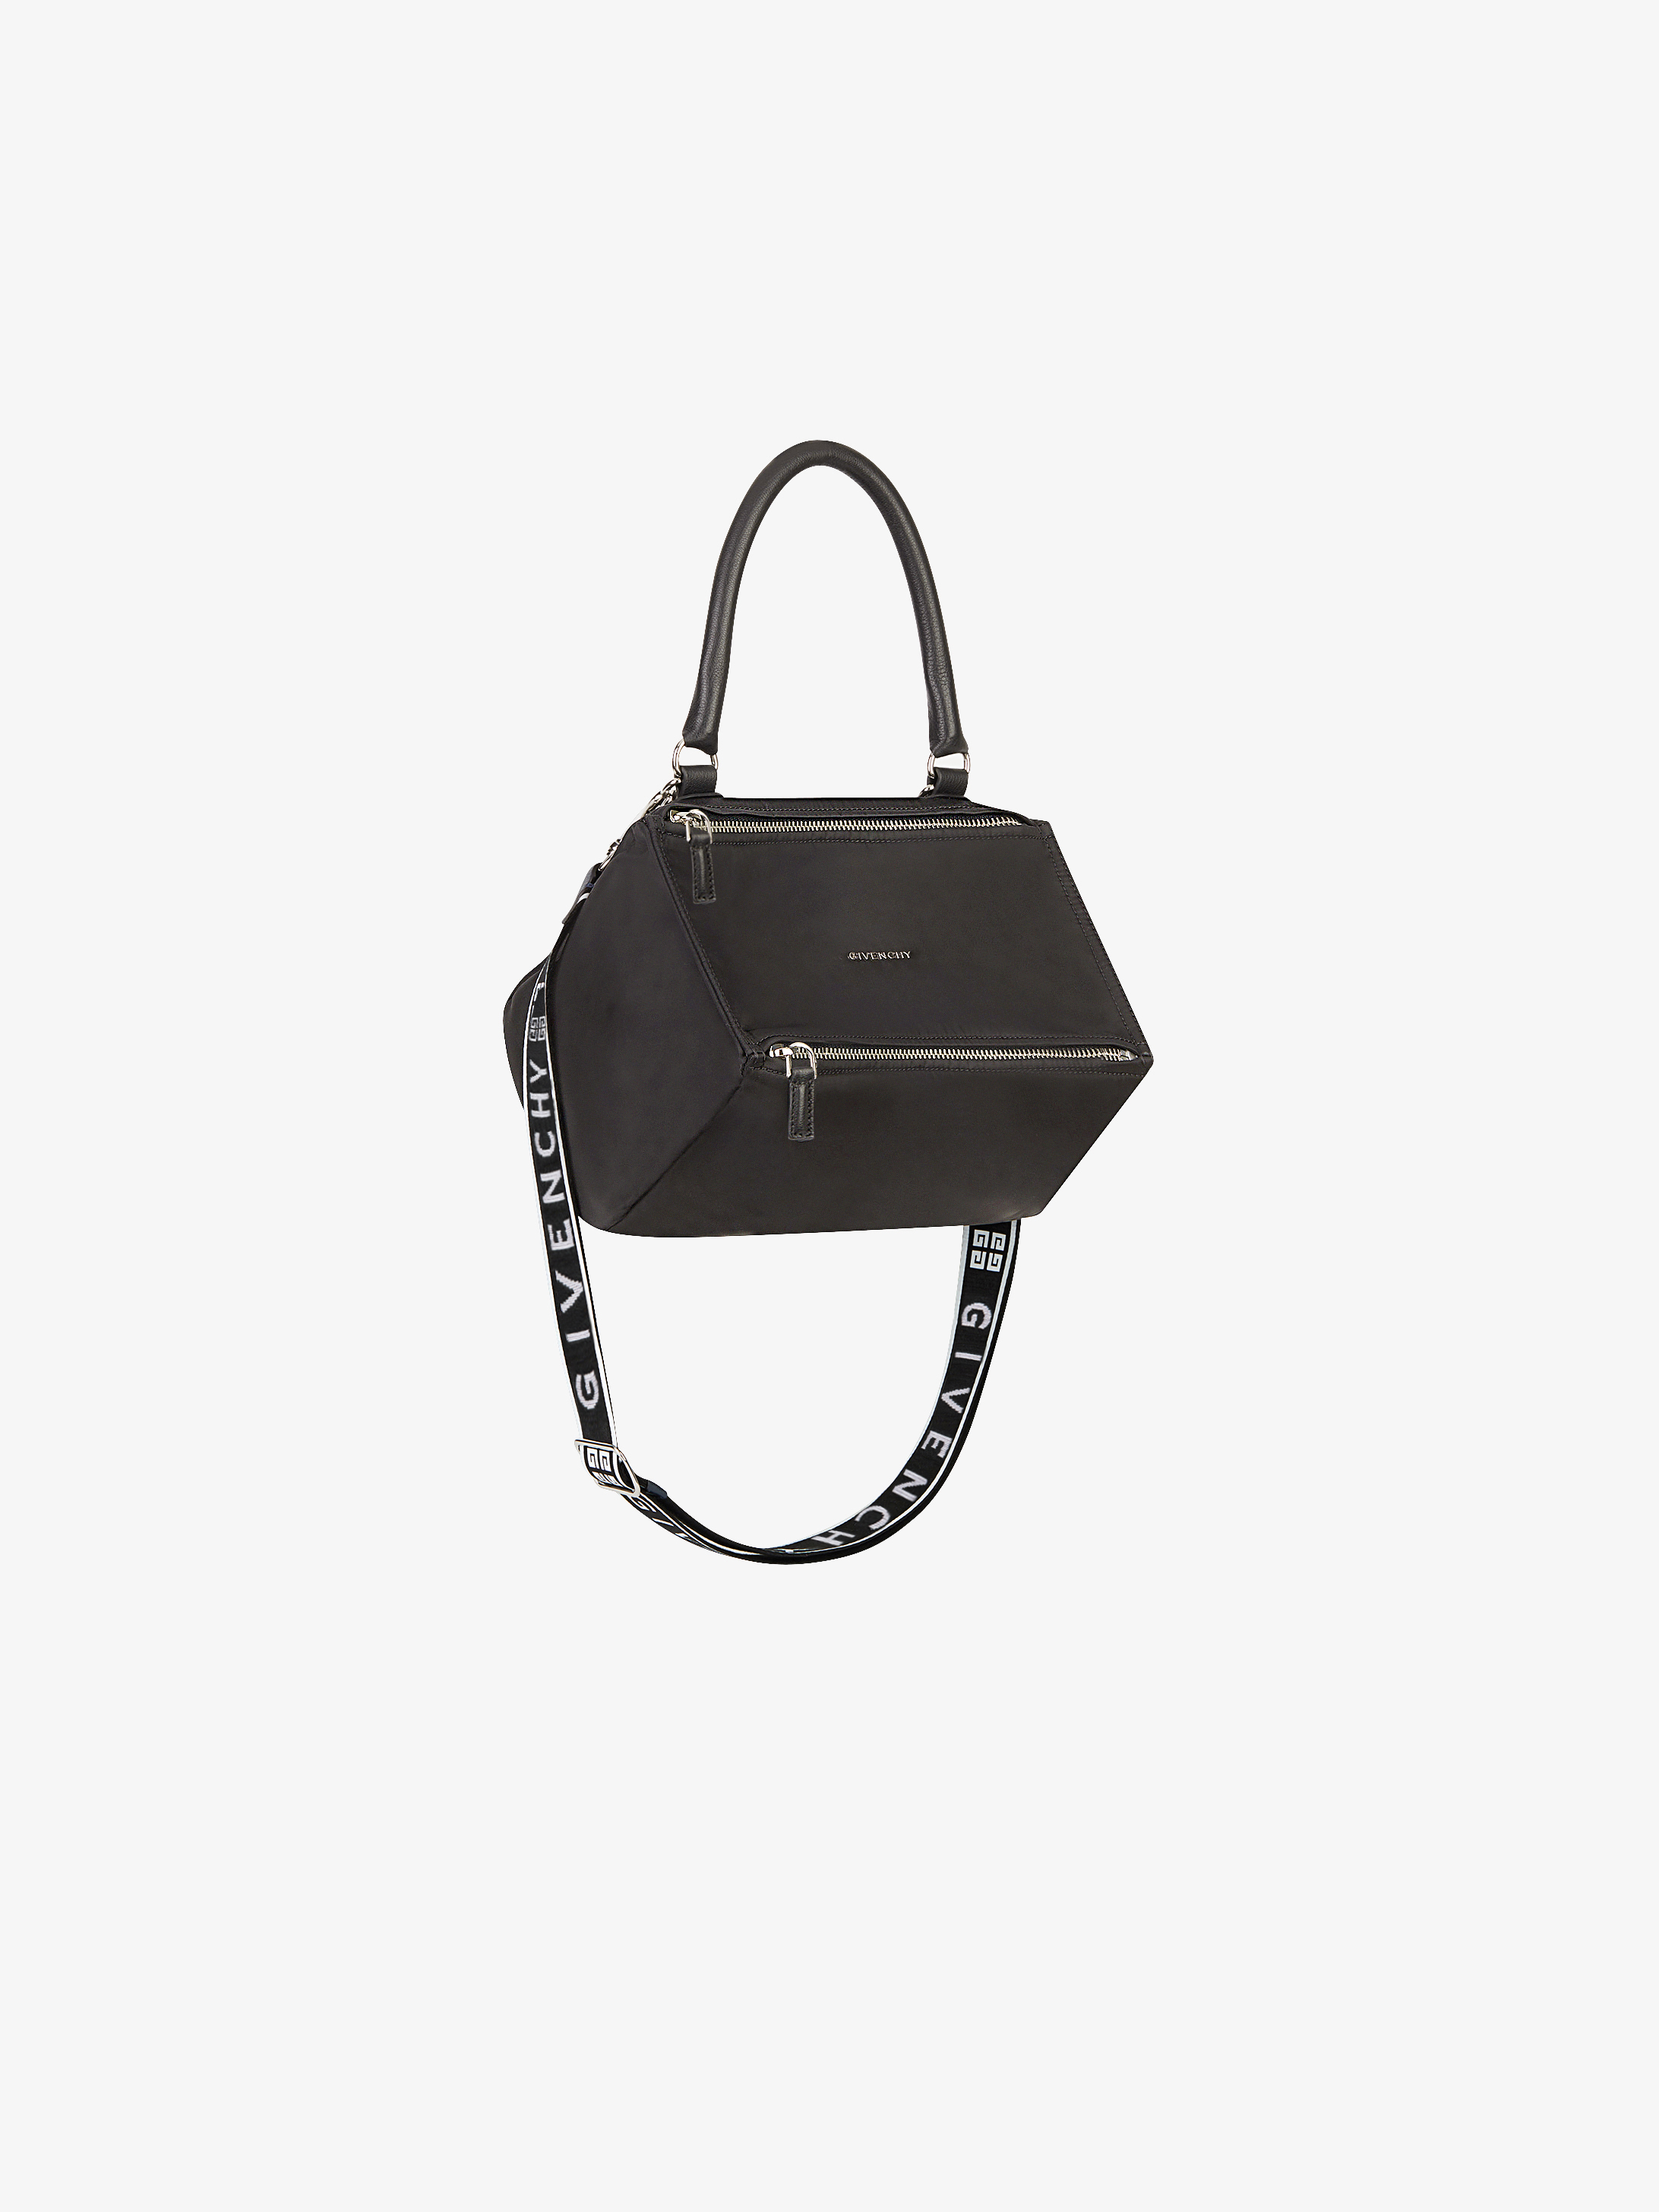 Givenchy 4g Small Pandora Bag In Nylon